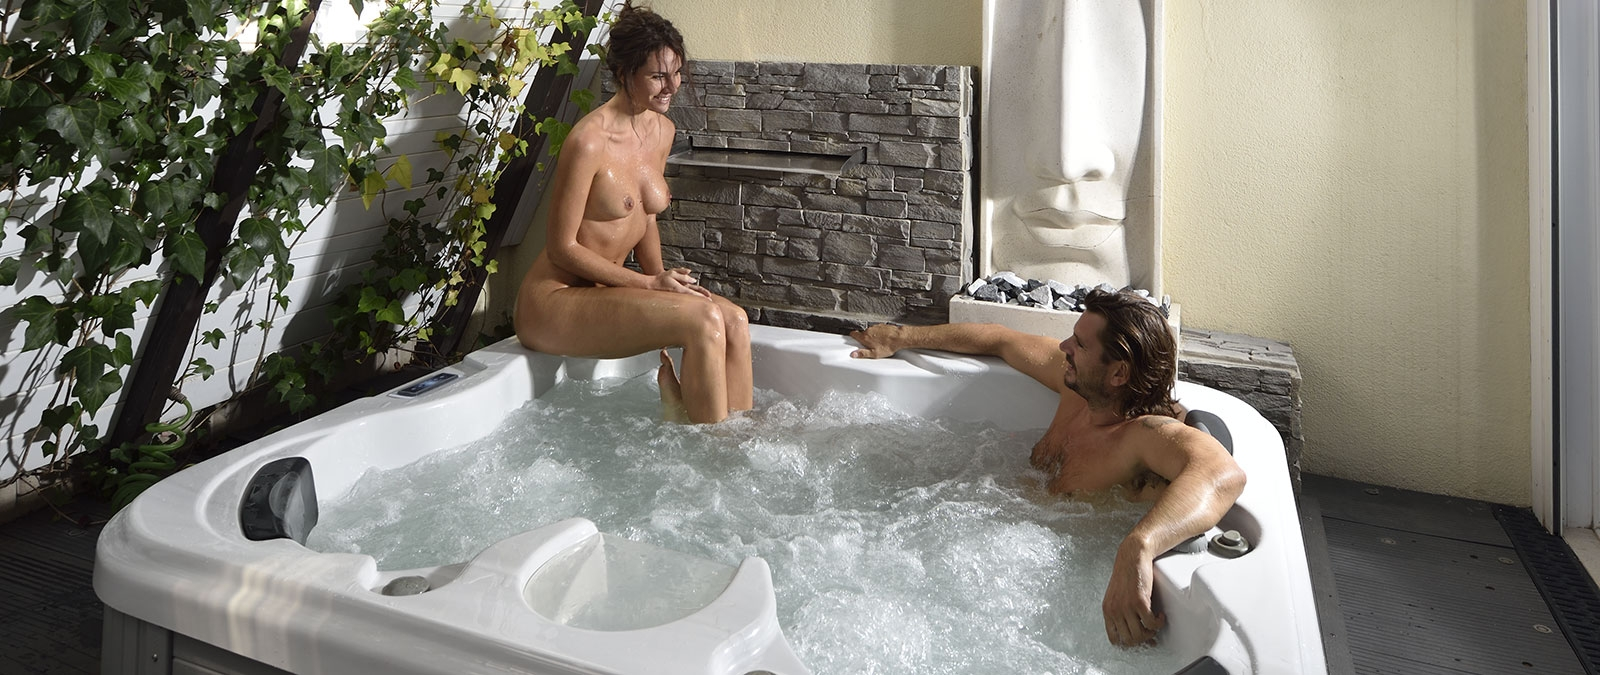 Pop naturist villa with Jacuzzi